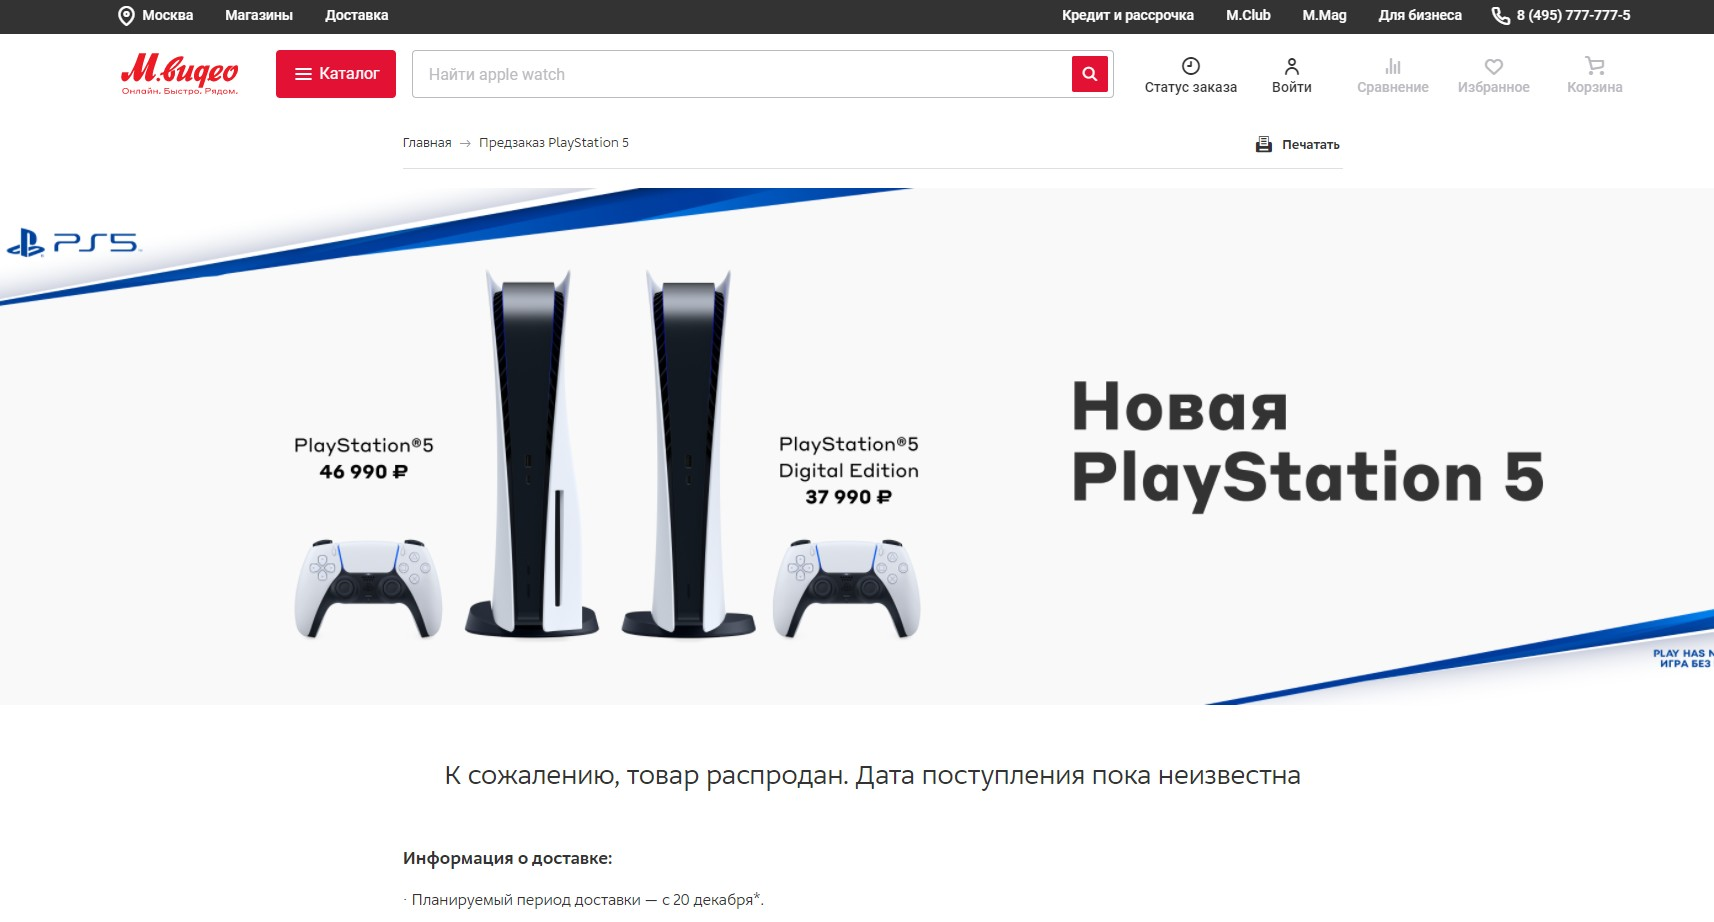 Сеть «М. Видео» удалила страницу PlayStation 5 со своего сайта